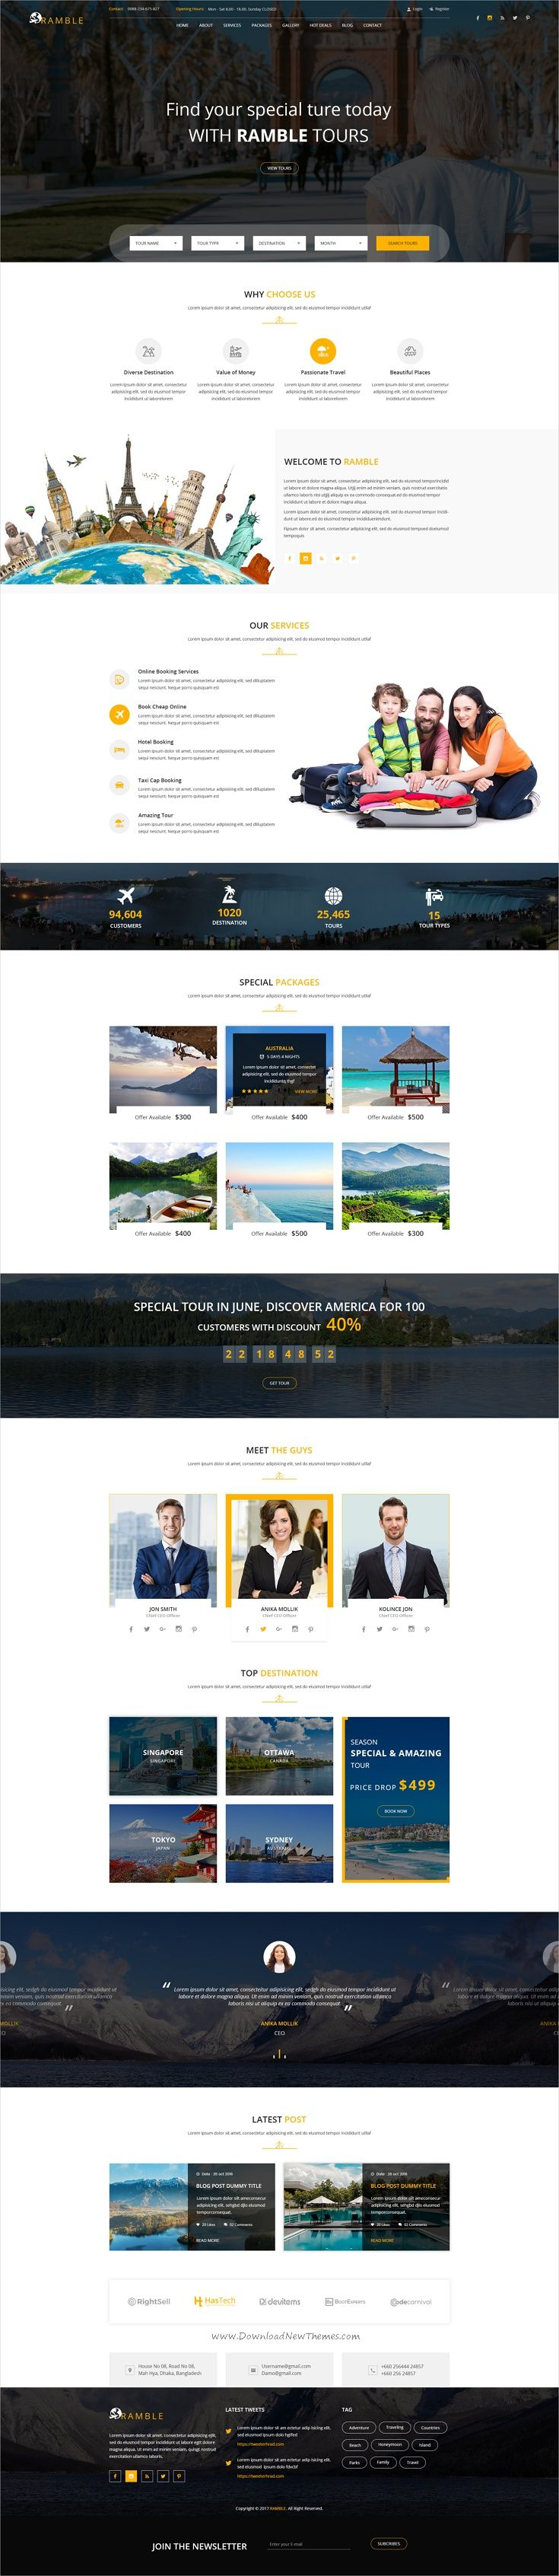 Ramble is clean and modern design #PSD template for for #tour and #travel agencies website with 10 layered PSD files download now > https://themeforest.net/item/ramble-tour-travel-psd-template/19900430?ref=Datasata